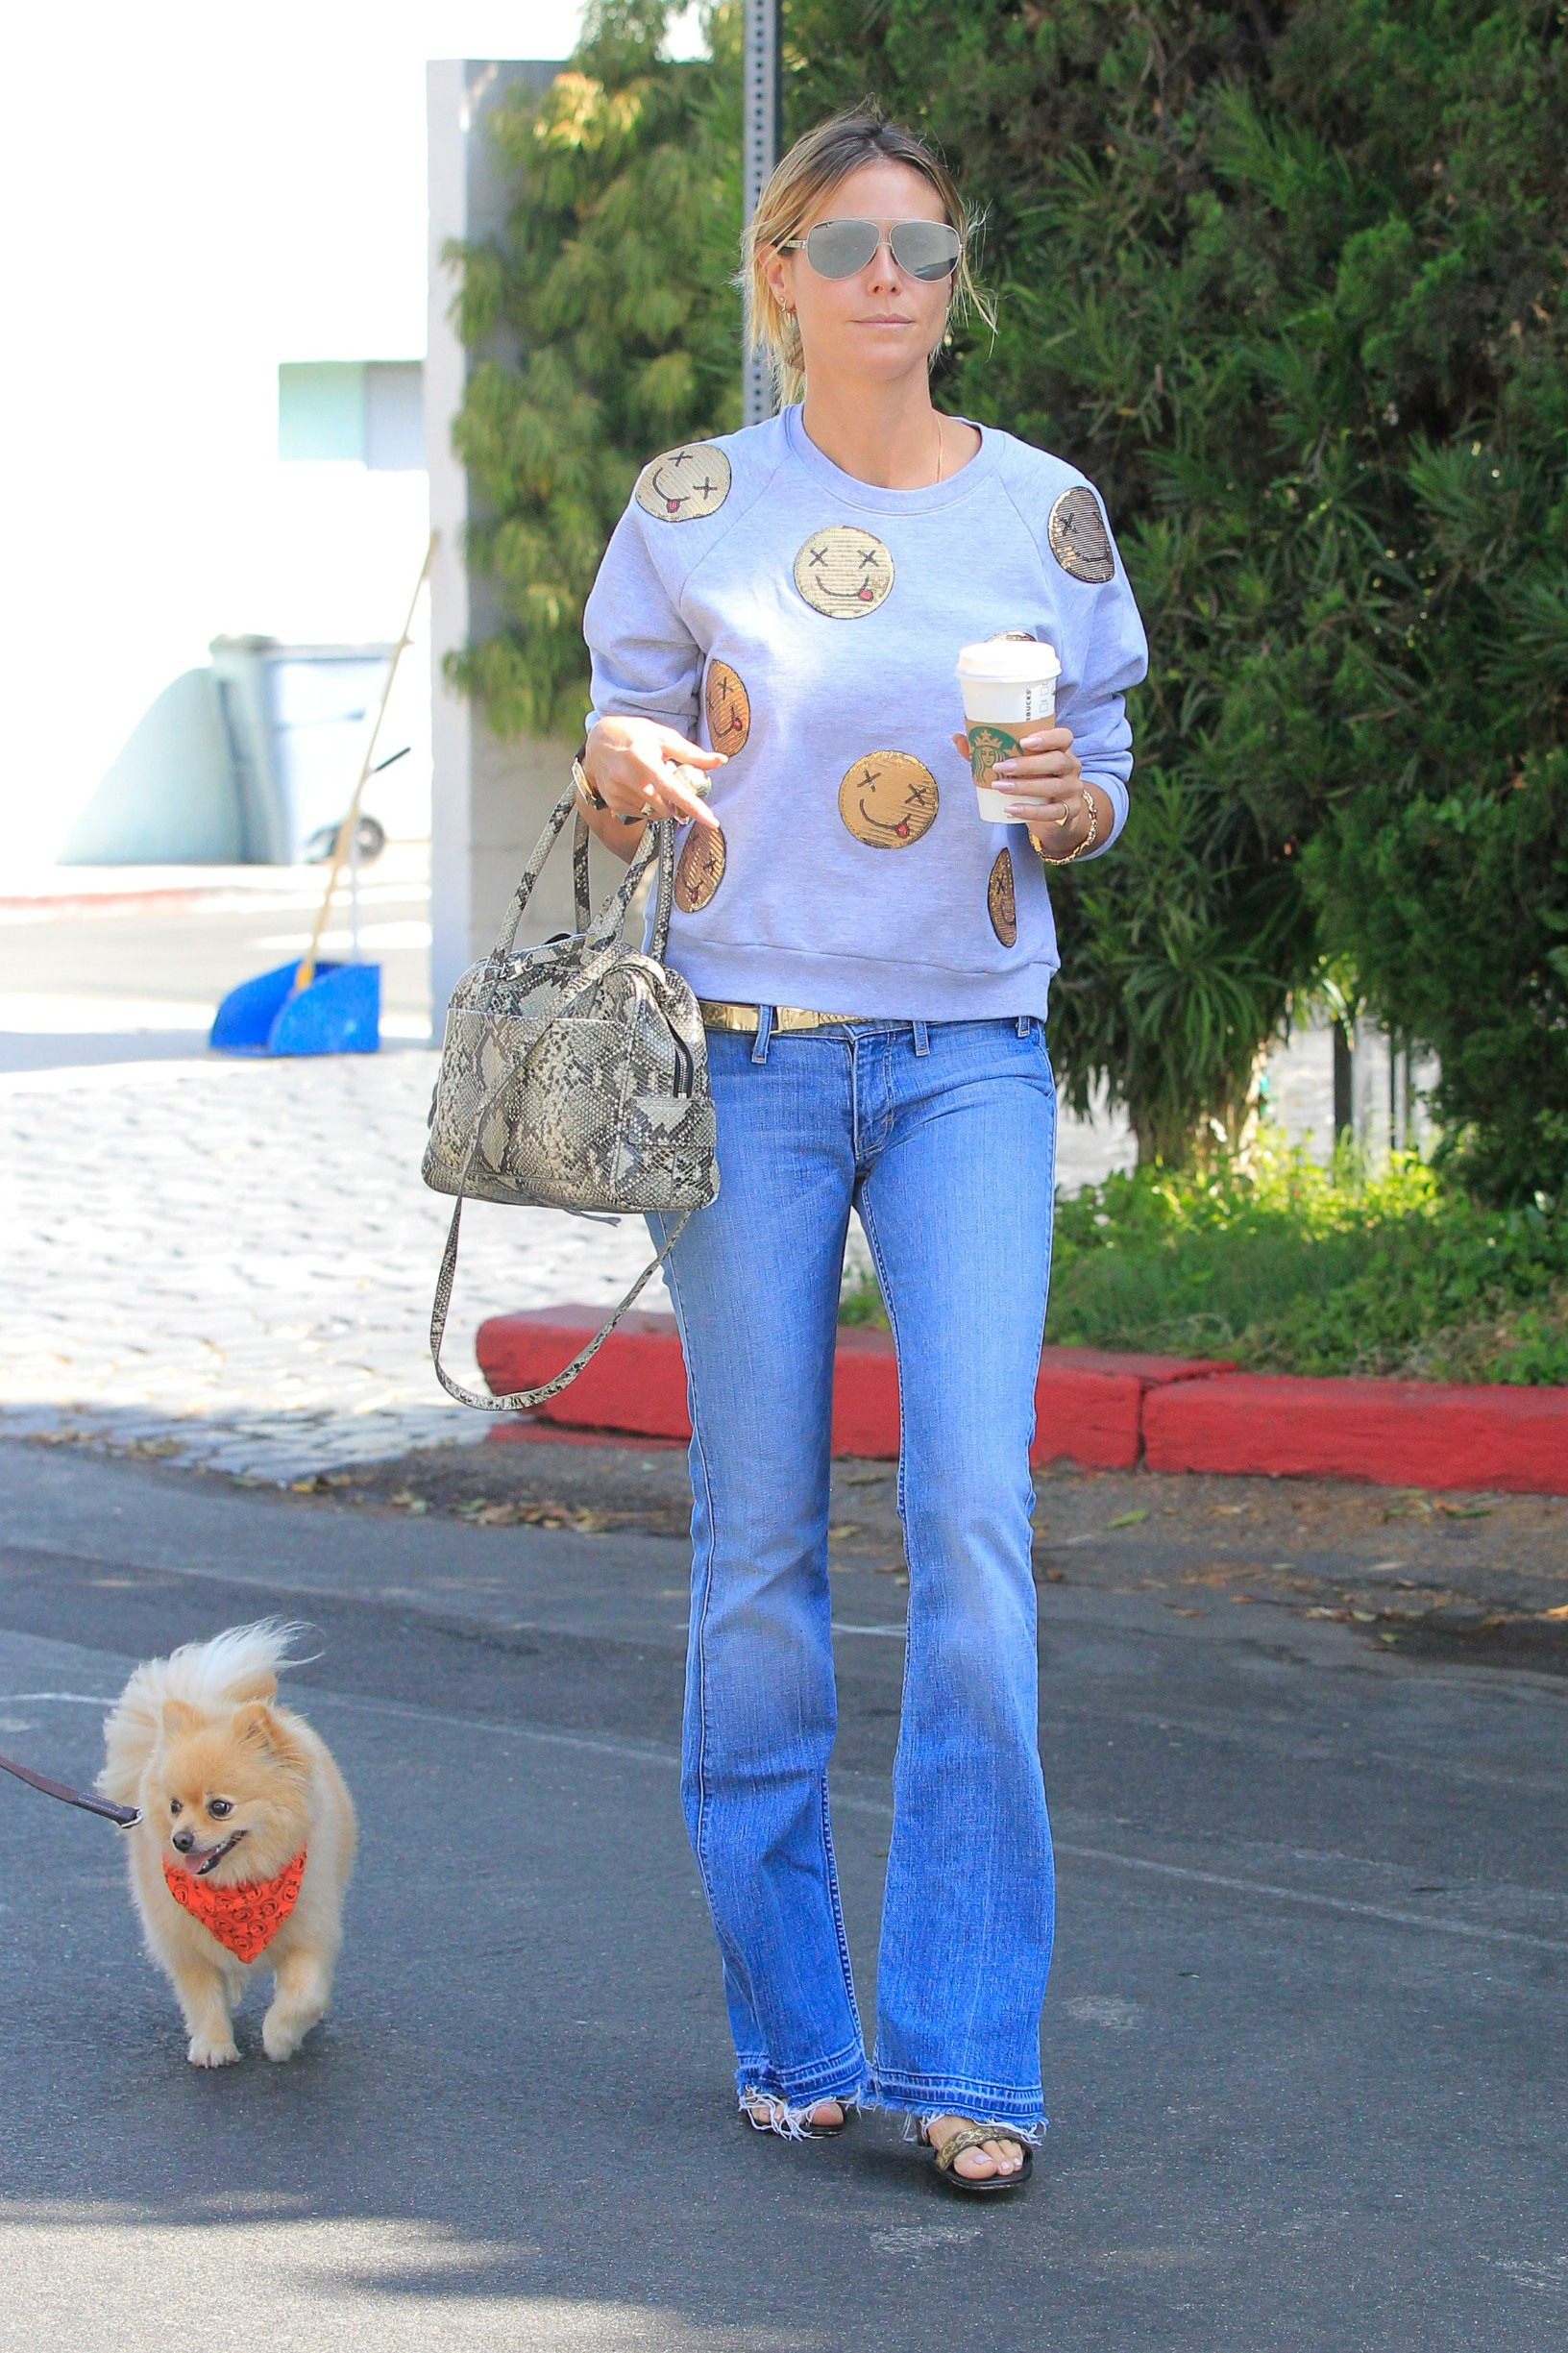 Los Angeles, CA - Busy mom Heidi Klum and daughter Helena enjoy a refreshment while out and about with their cute dog on this Sunday afternoon.          October 2, 2016, Image: 301735309, License: Rights-managed, Restrictions: , Model Release: no, Credit line: - / Backgrid USA / Profimedia